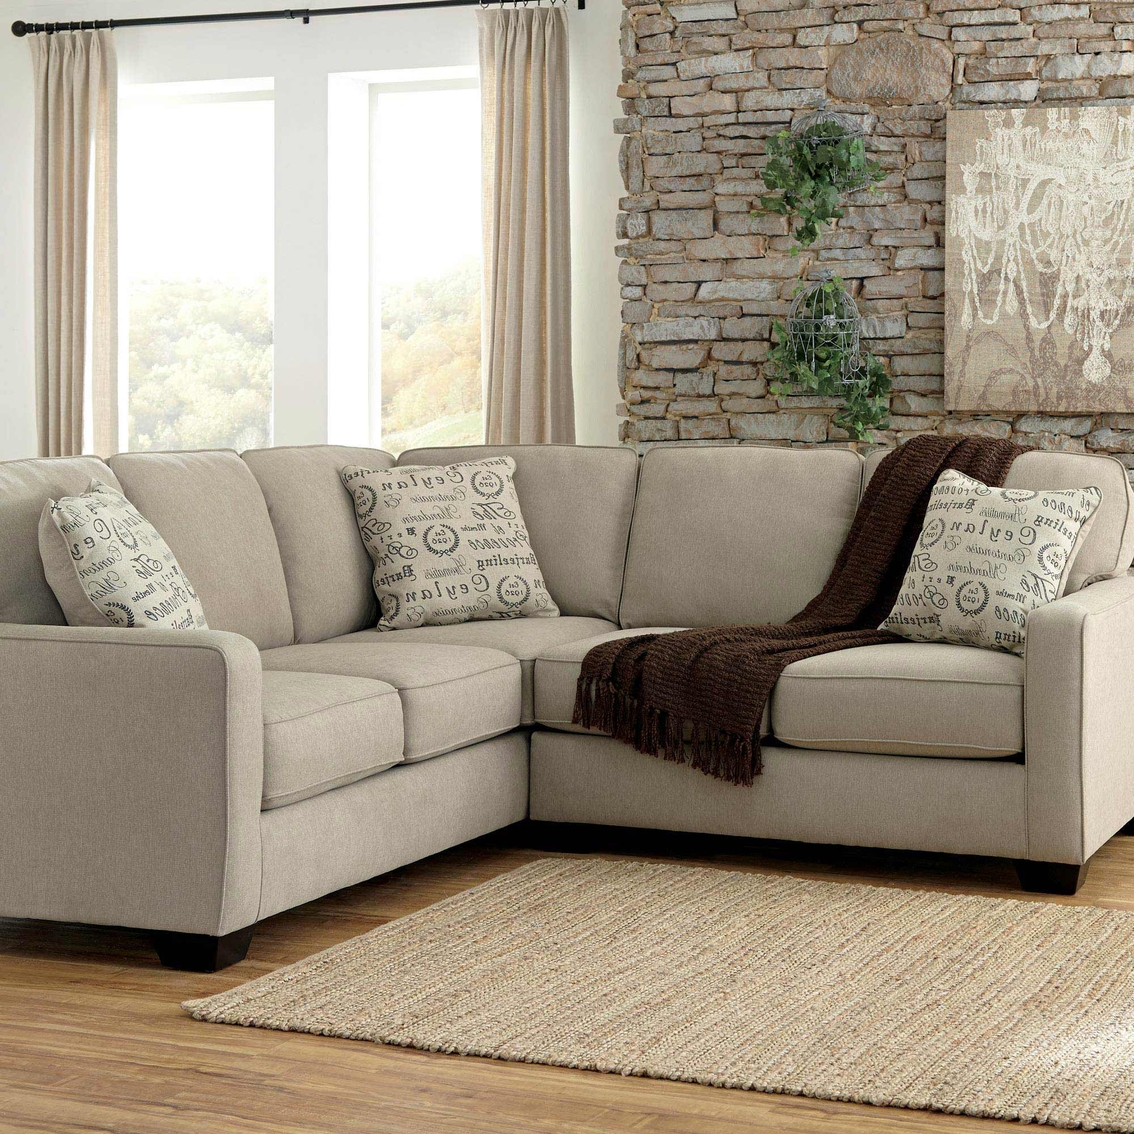 Ashley Furniture In Colorado Springs: Signature Design By Ashley Alenya 2 Pc. Sectional